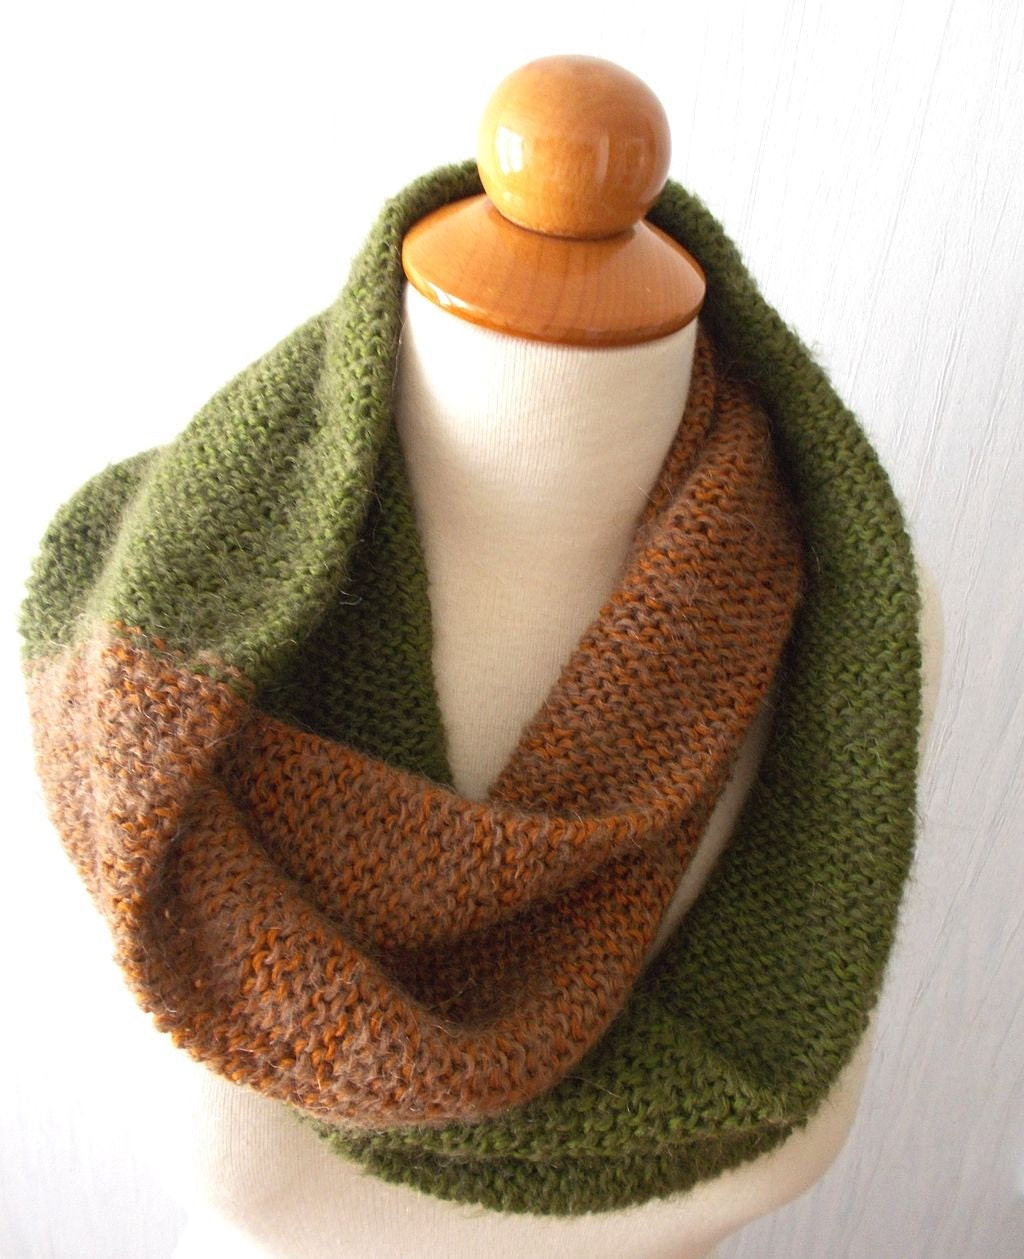 Knitting Patterns Circle Scarf Free : Circle Scarf Knitted Infinity Scarf In Copper Brown and Green